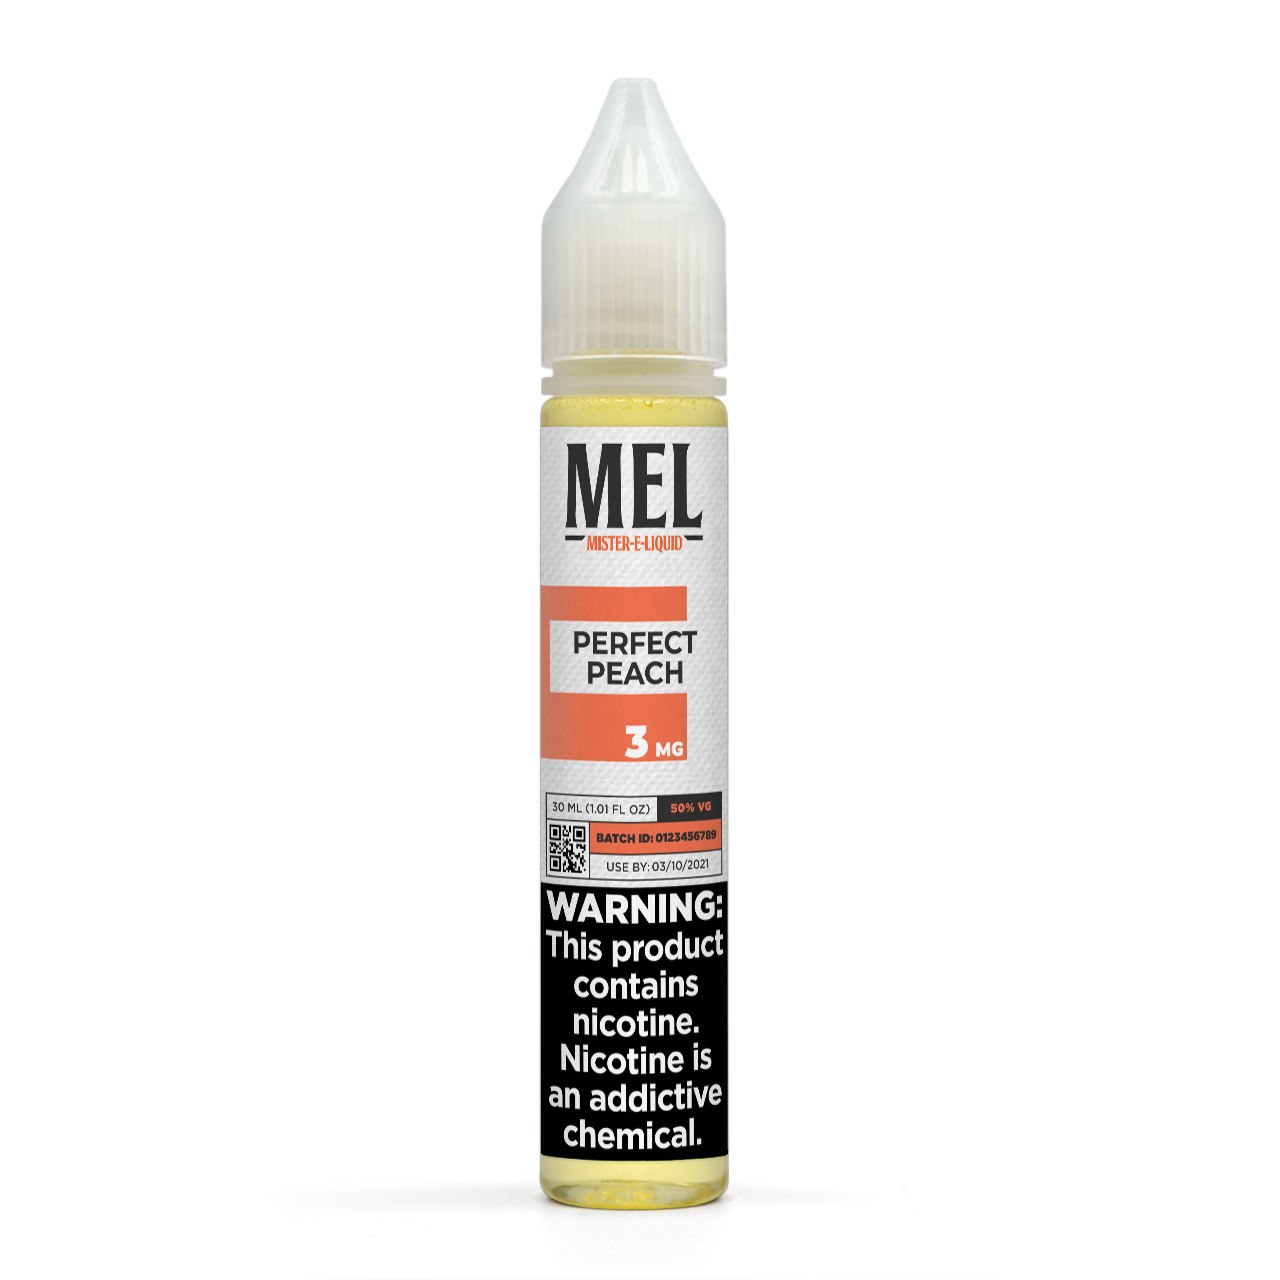 MEL Perfect Peach Vape Juice, 3 mg